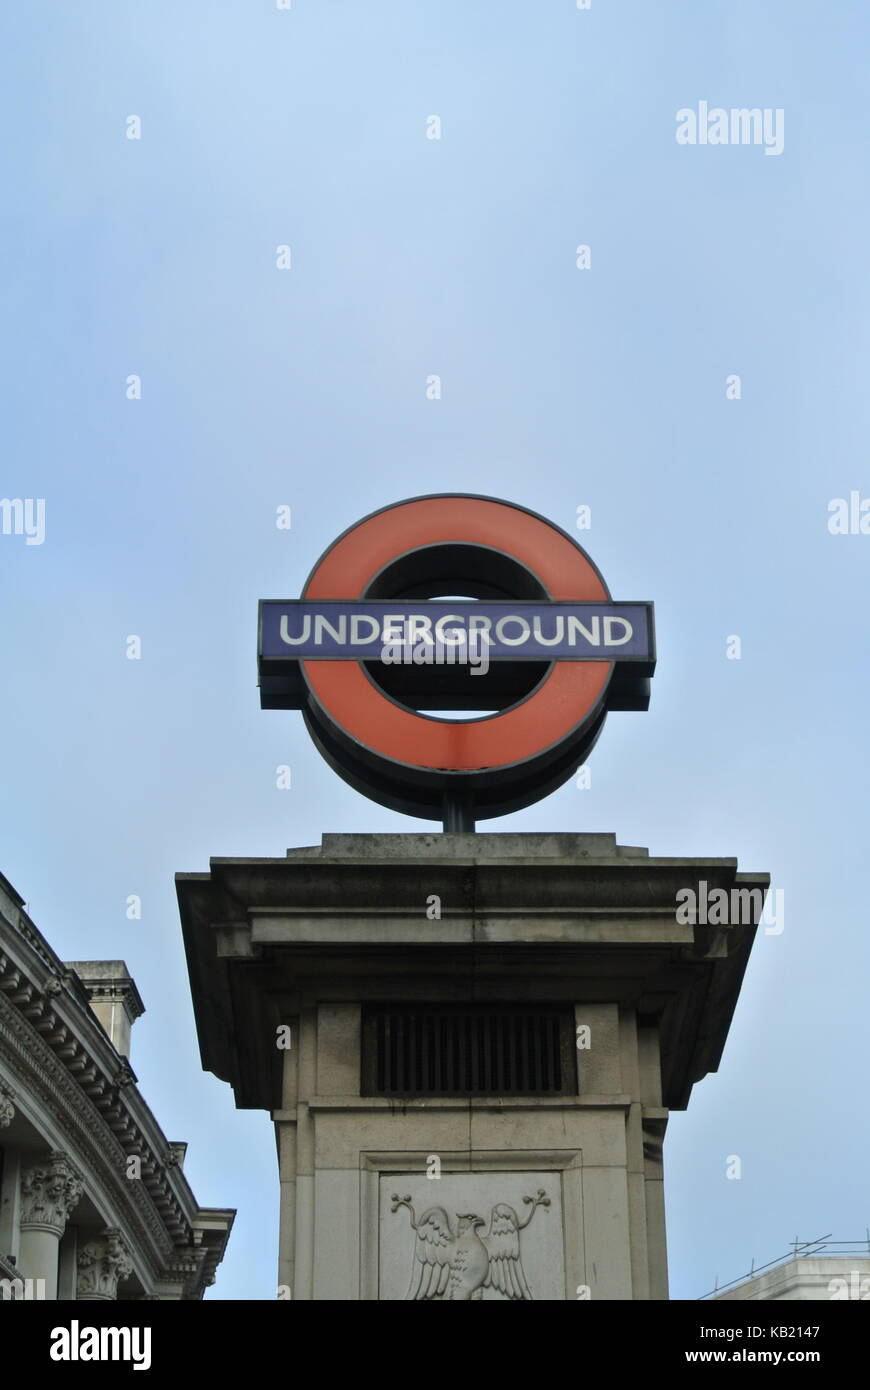 Underground sign on top of stone column, Bank Station, London Underground, London, England, UK - Stock Image